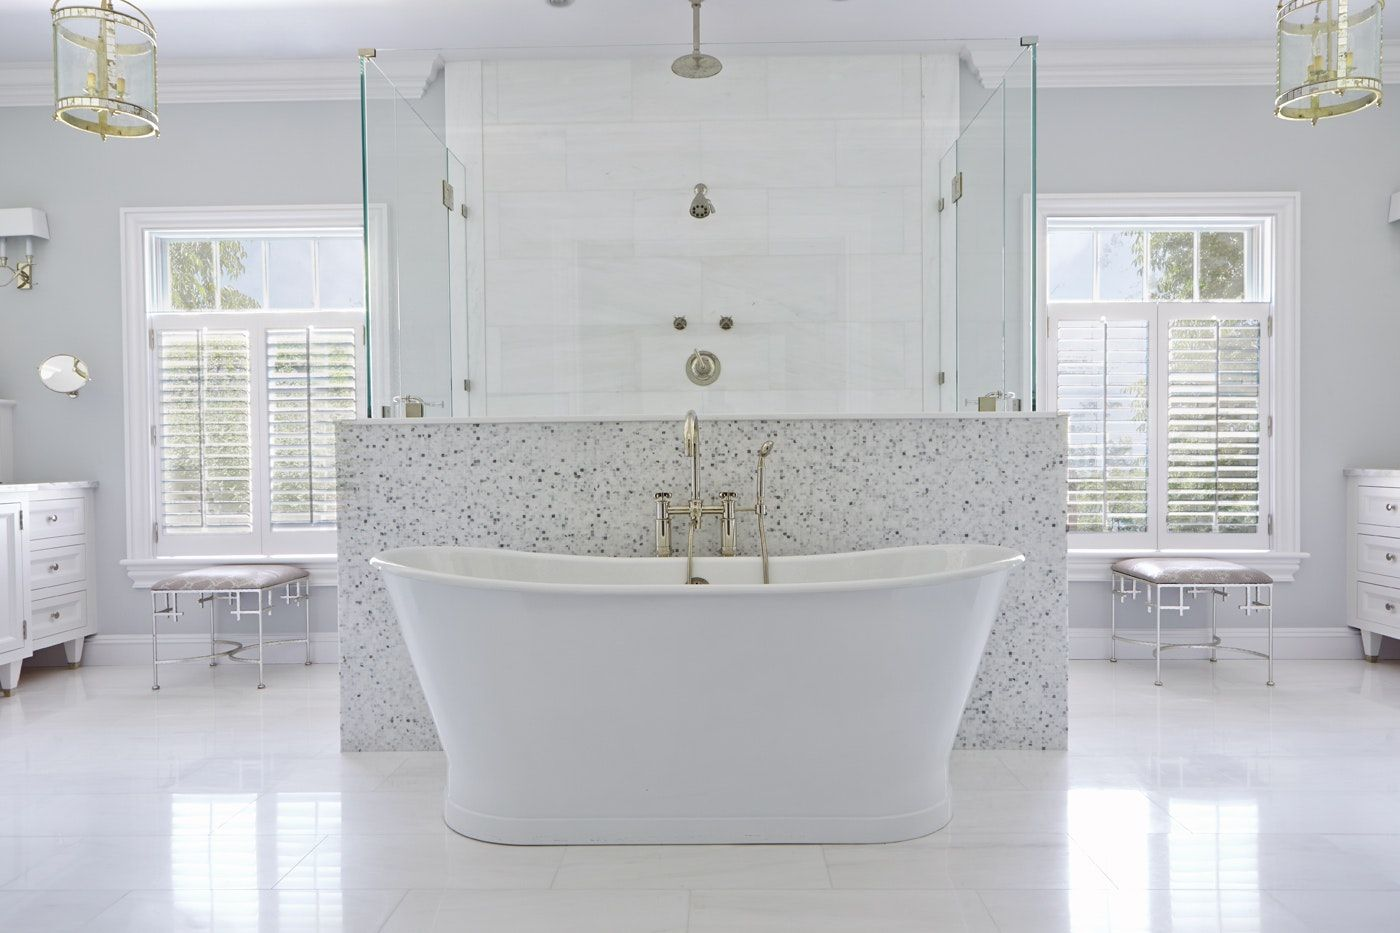 Free standing bathtub double entrance shower behind tub in